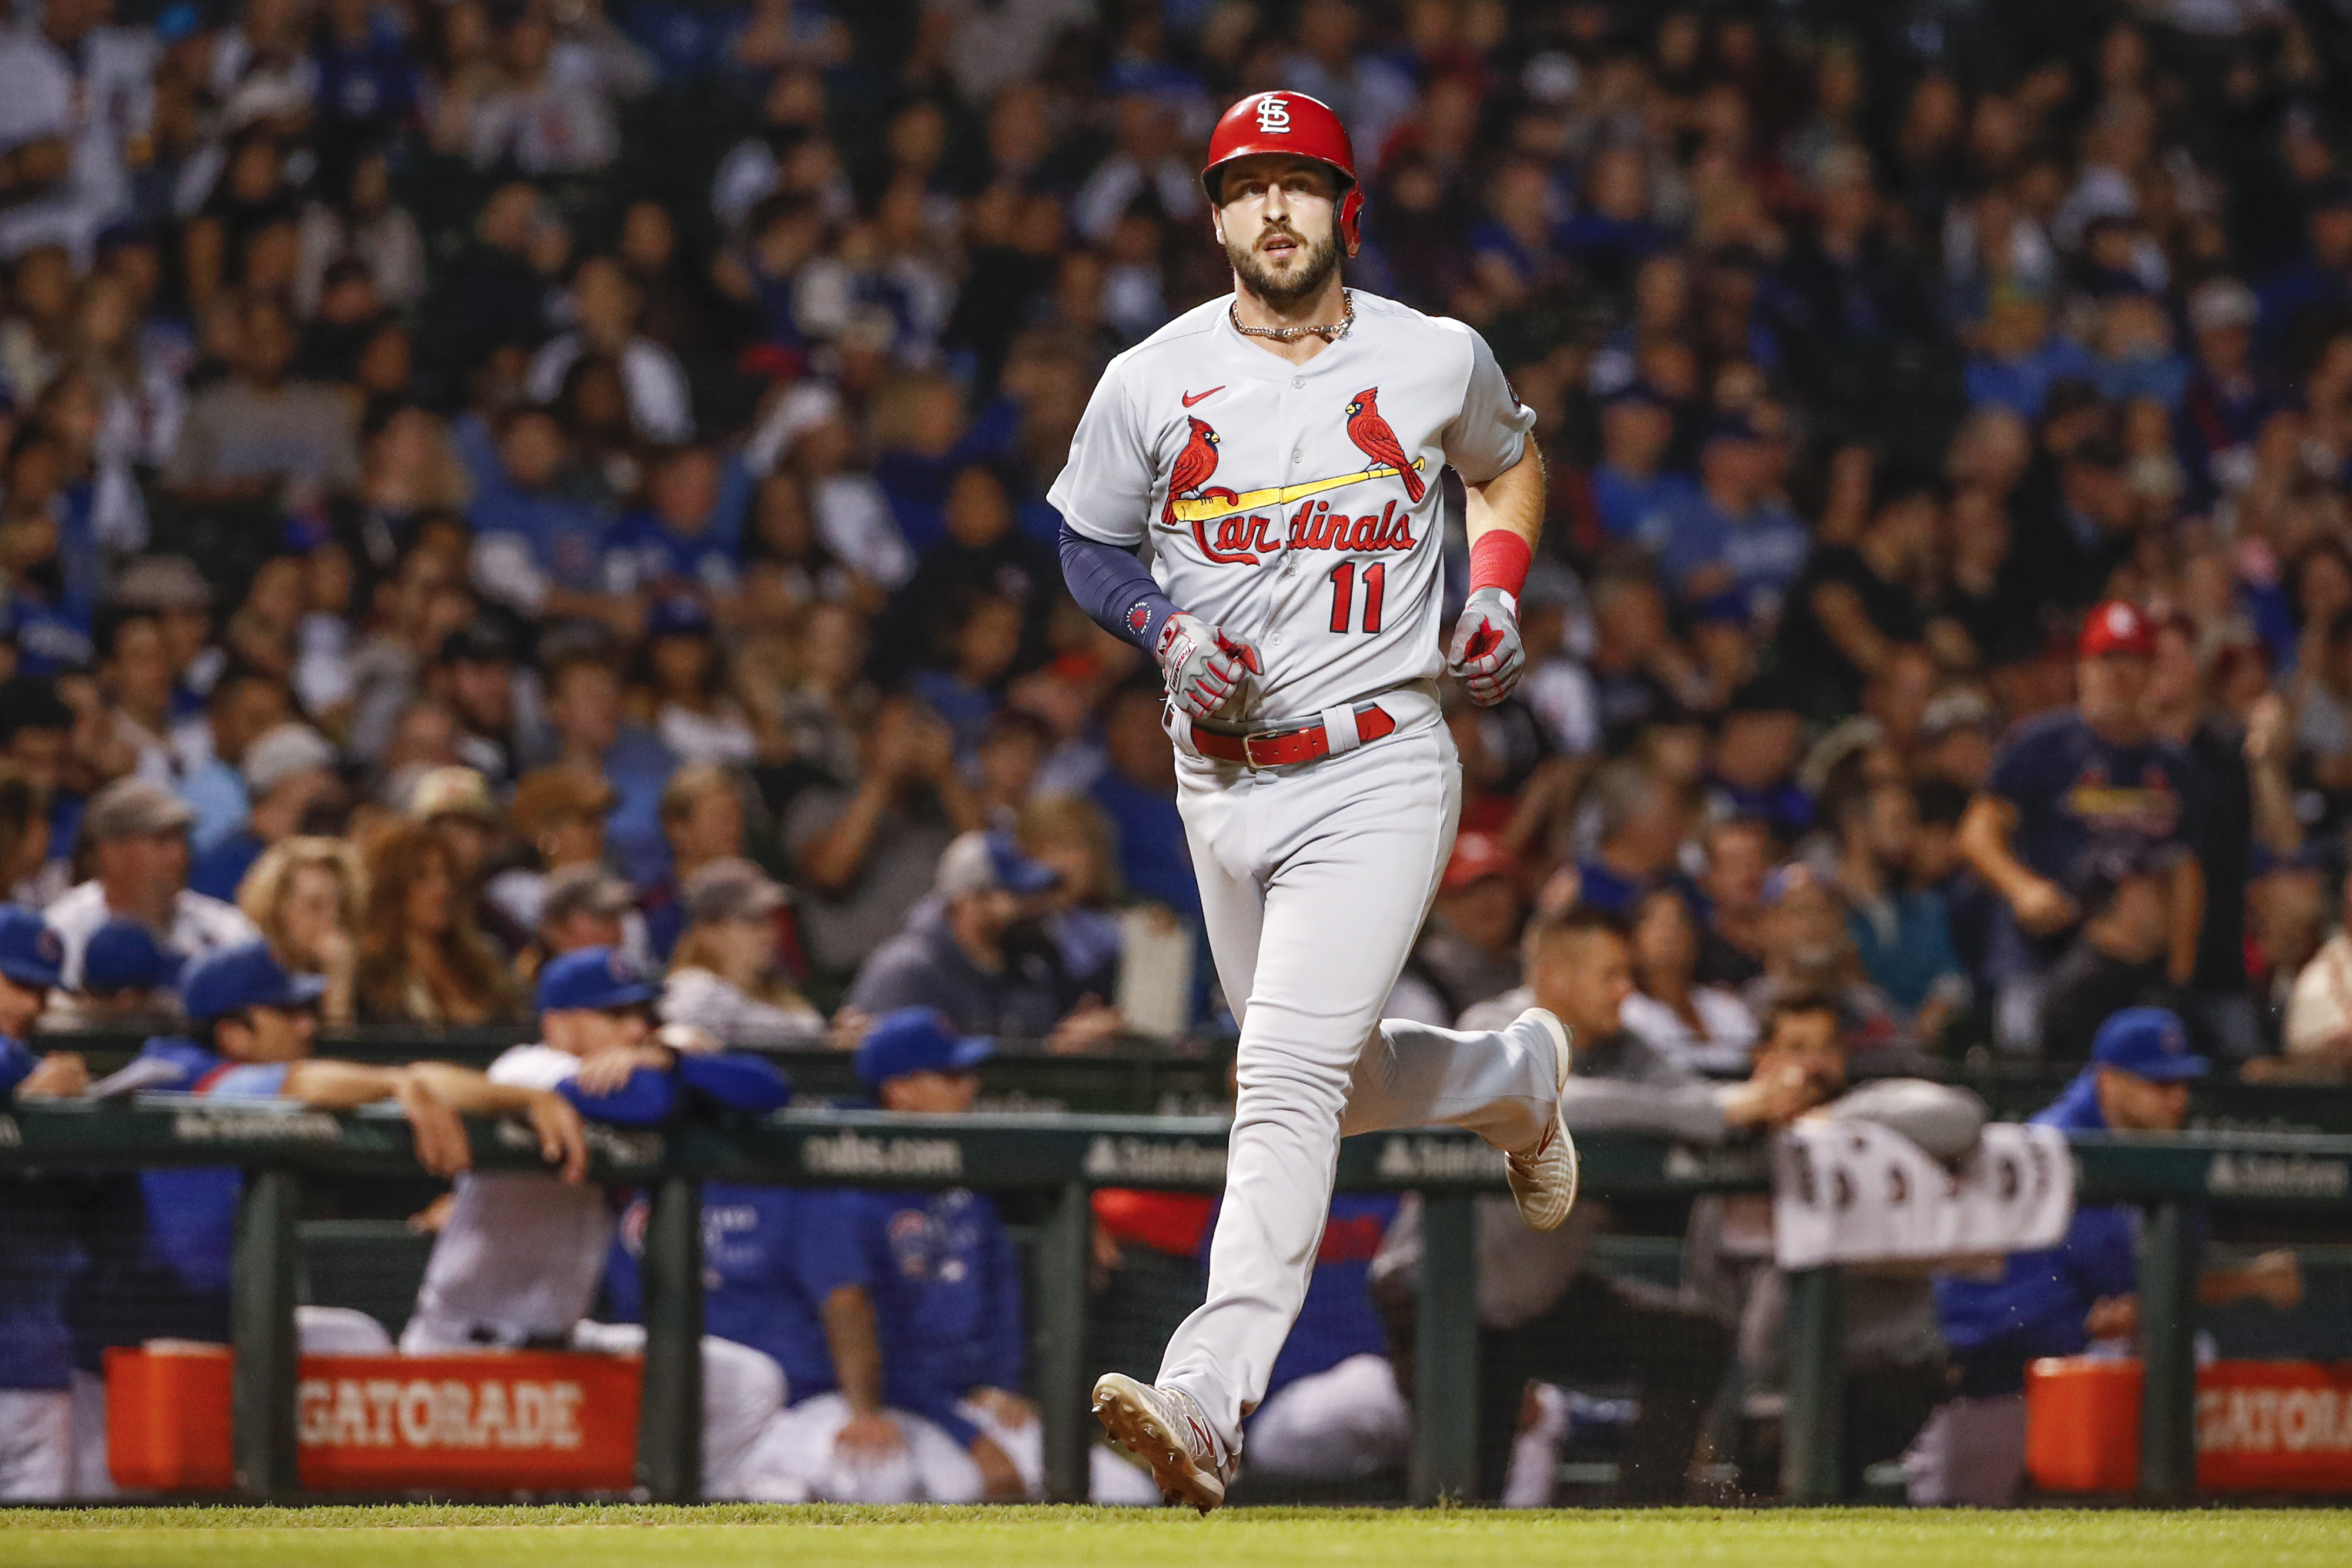 Sep 24, 2021; Chicago, Illinois, USA; St. Louis Cardinals shortstop Paul DeJong (11) crosses home plate after hitting a solo home run against the Chicago Cubs during the third inning of game 2 of a doubleheader at Wrigley Field. Mandatory Credit: Kamil Krzaczynski-USA TODAY Sports